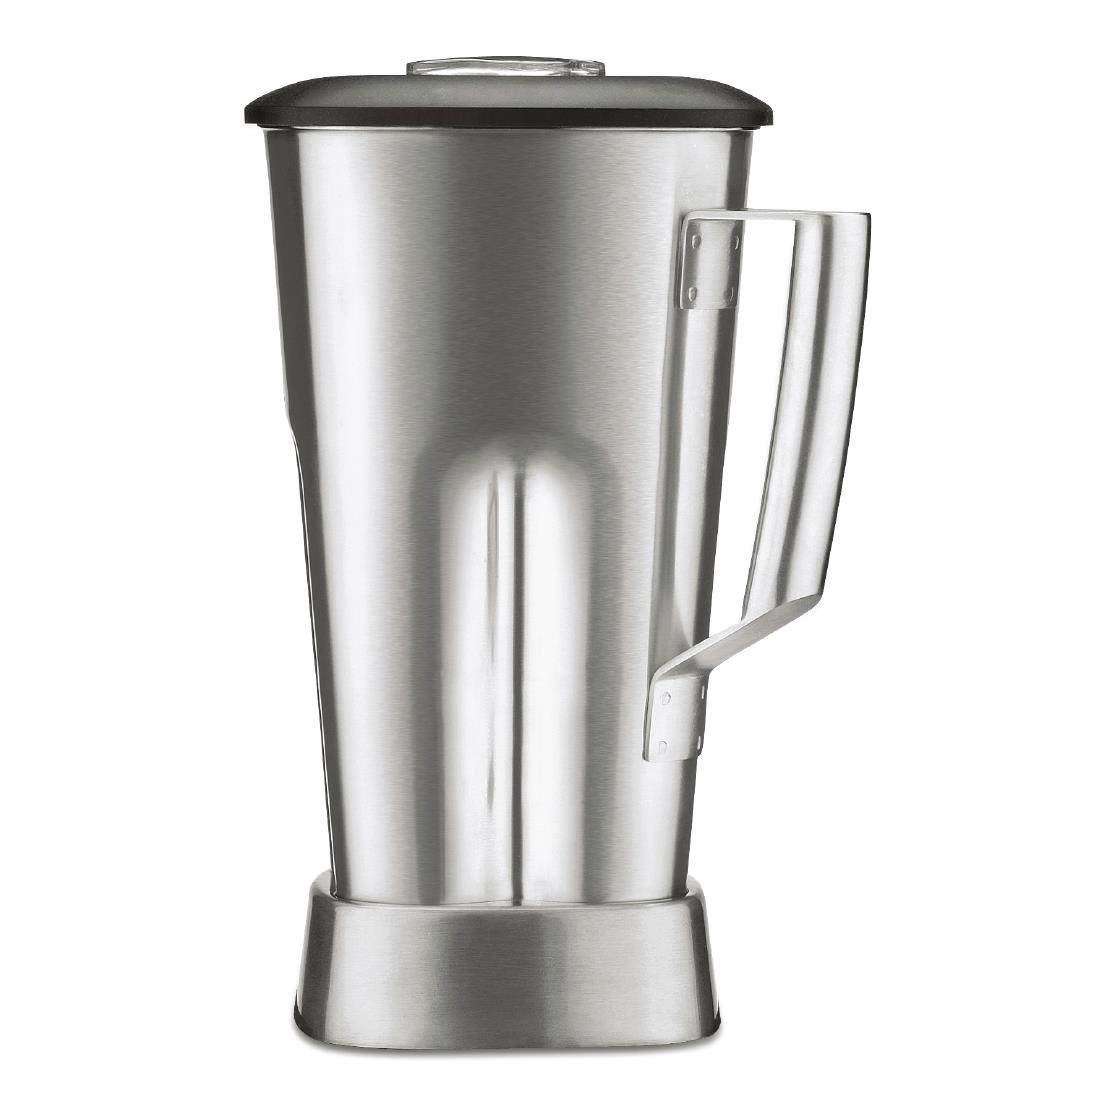 Waring 2 Litre Stainless Steel Blender Jar CAC90I